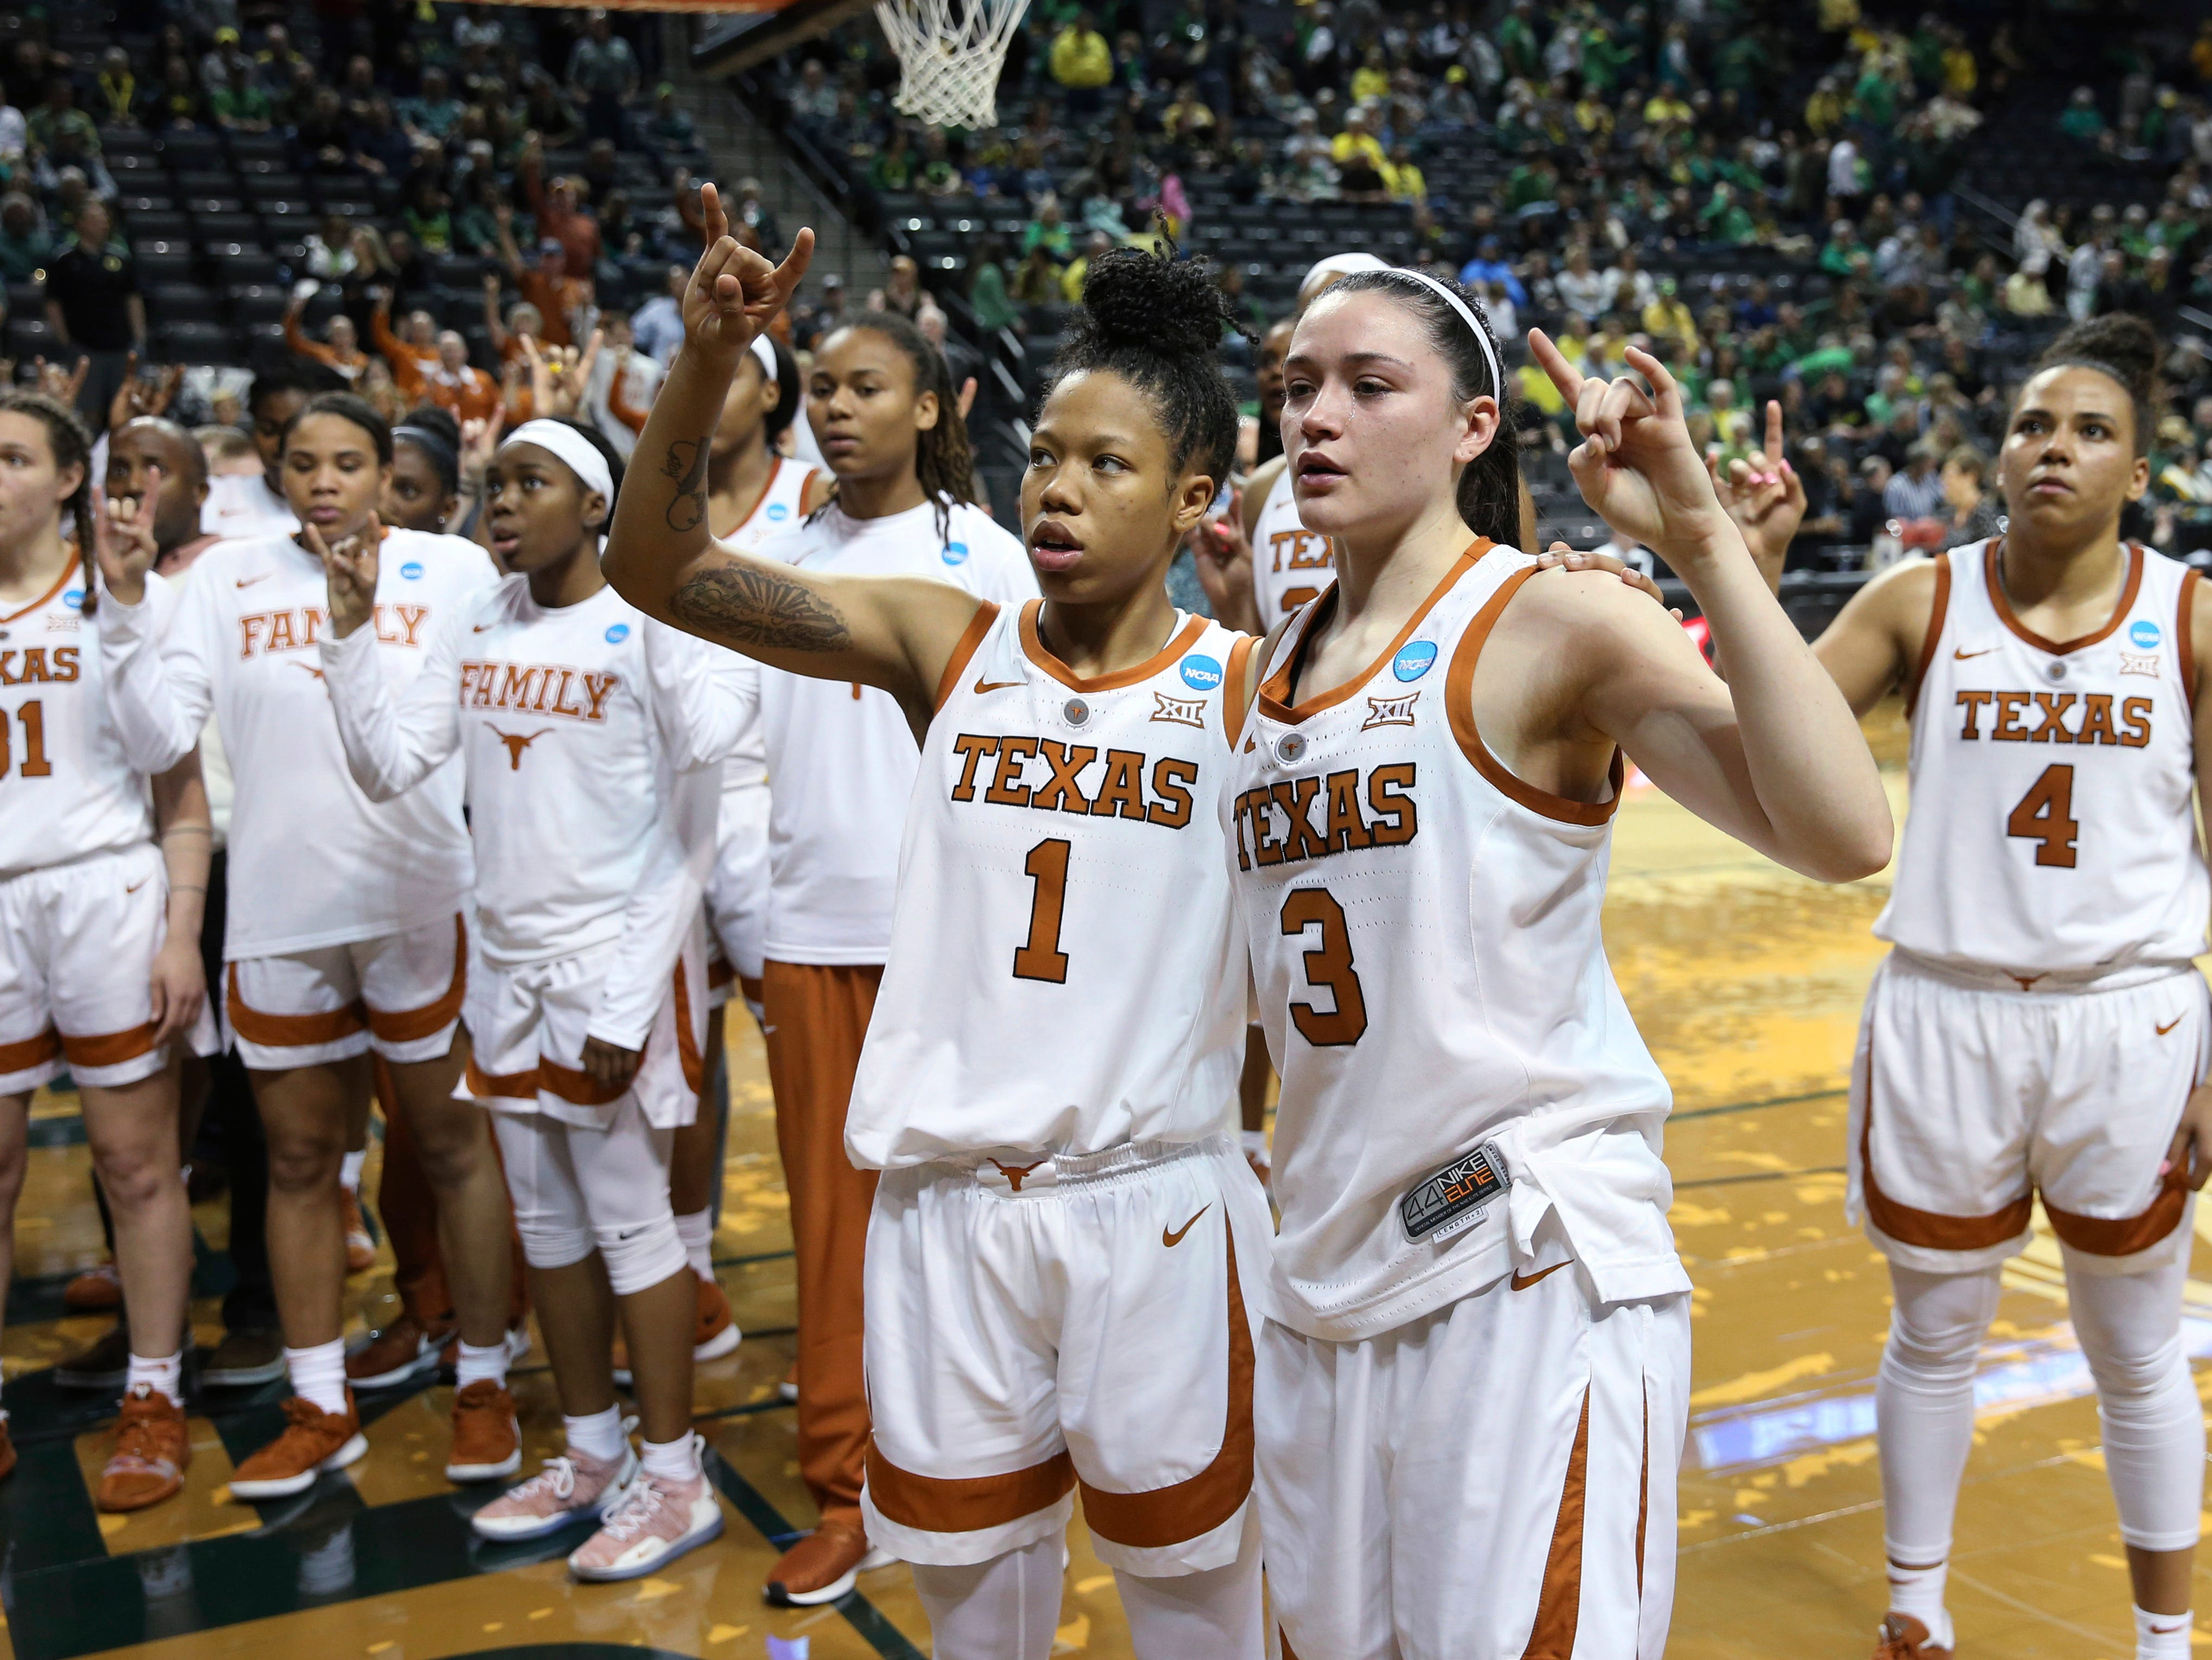 Texas players, including Sug Sutton, center left, and Danni Williams, center right, acknowledge fans after losing to Indiana in a first-round game of the NCAA women's college basketball tournament Friday, March 22, 2019, in Eugene, Ore.